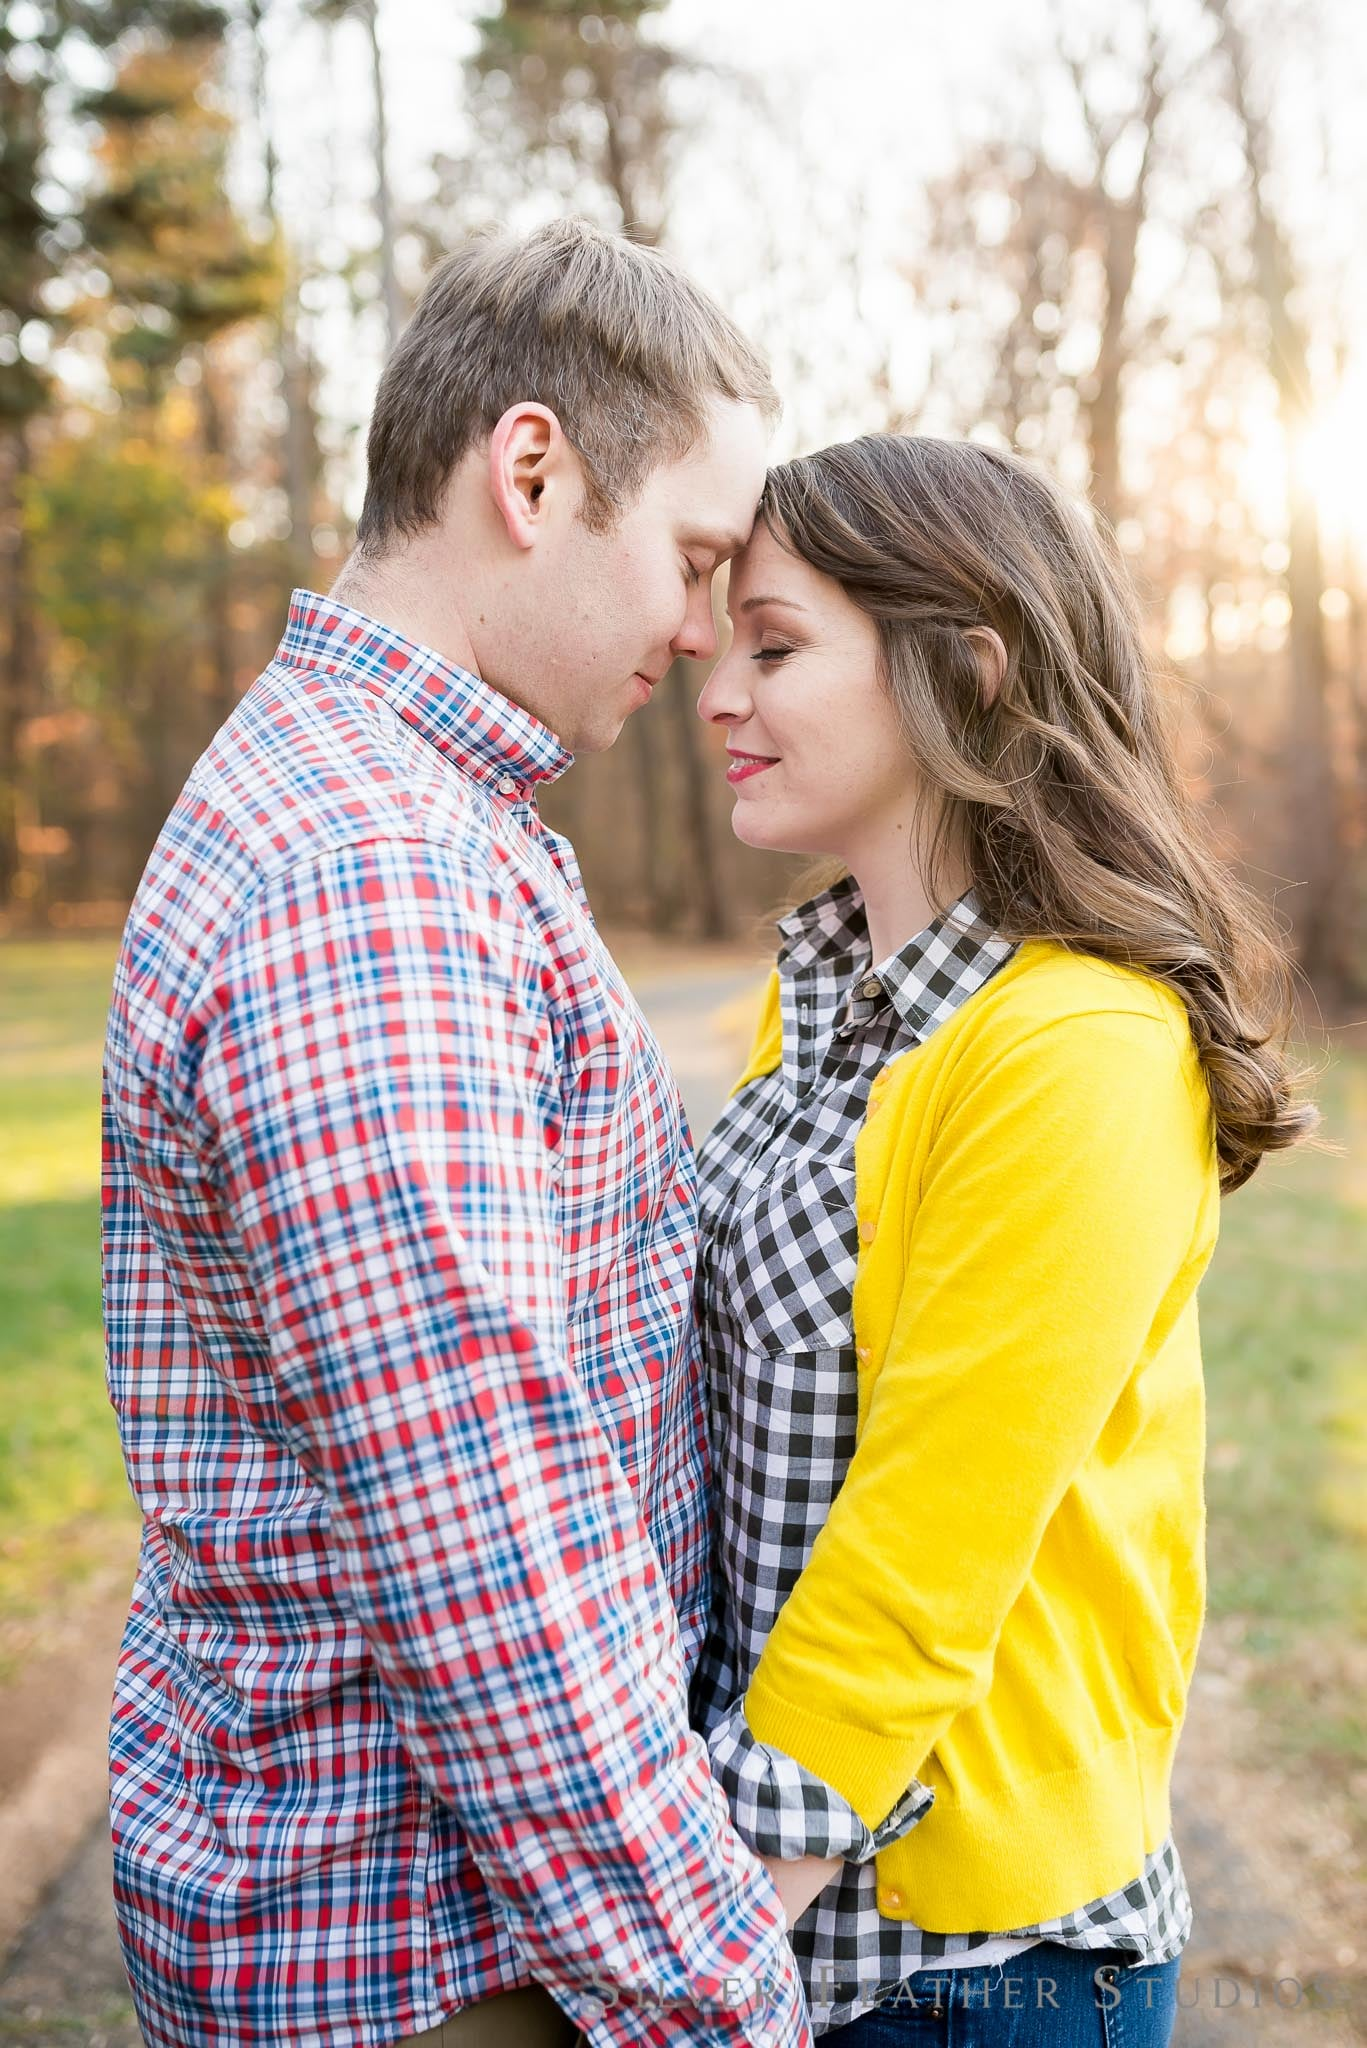 plaid and yellow outfits for this fall engagement session in greensboro.images by silver feather studios, burlington nc wedding photographer